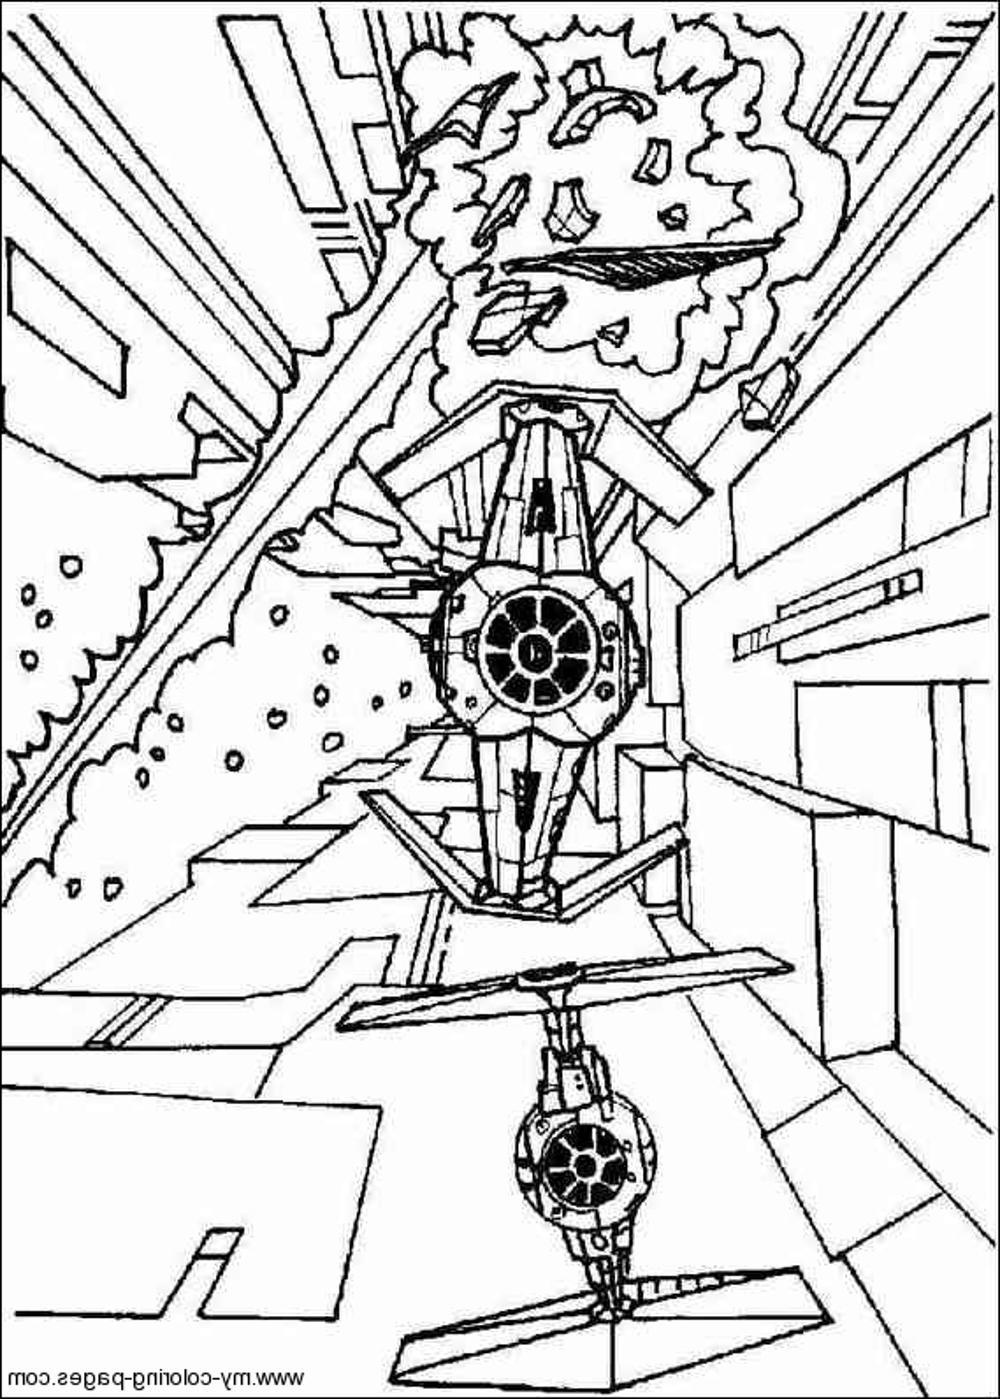 free lego star wars coloring pages lego star wars coloring pages free printable lego star wars coloring free lego pages star